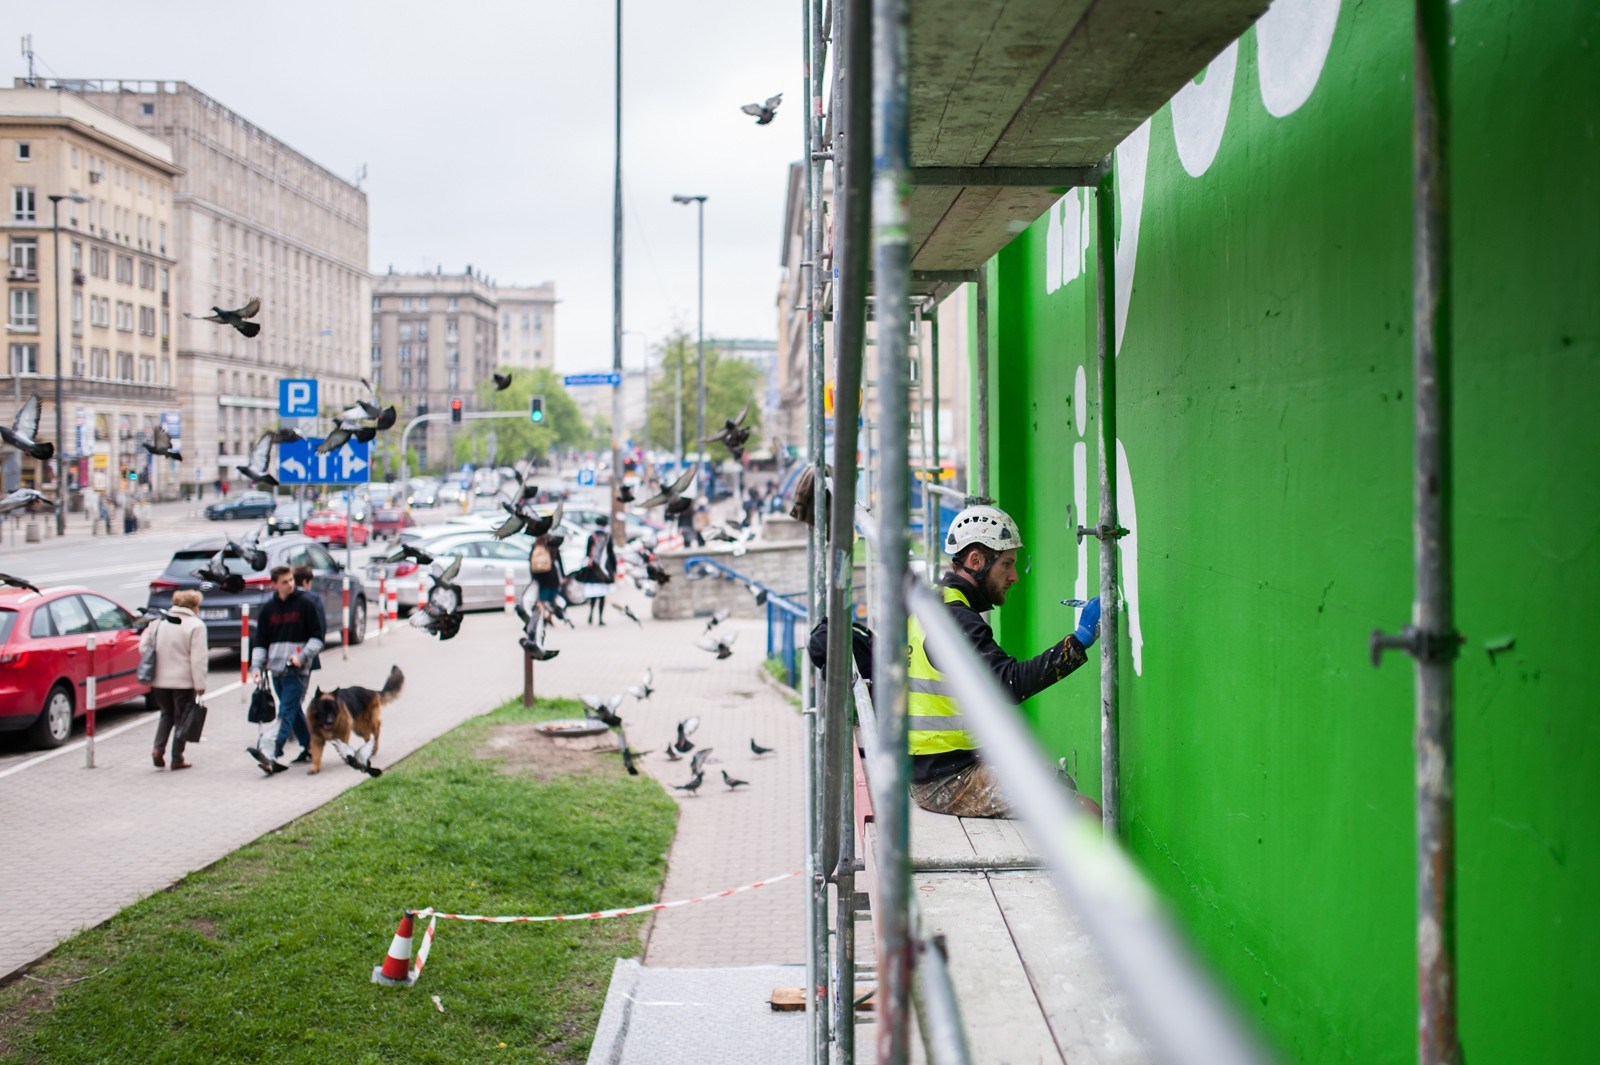 Advertising mural painted for Ben&Jerry's brand next to Metro Politechnika station in Warsaw | Ben & Jerry's | Portfolio